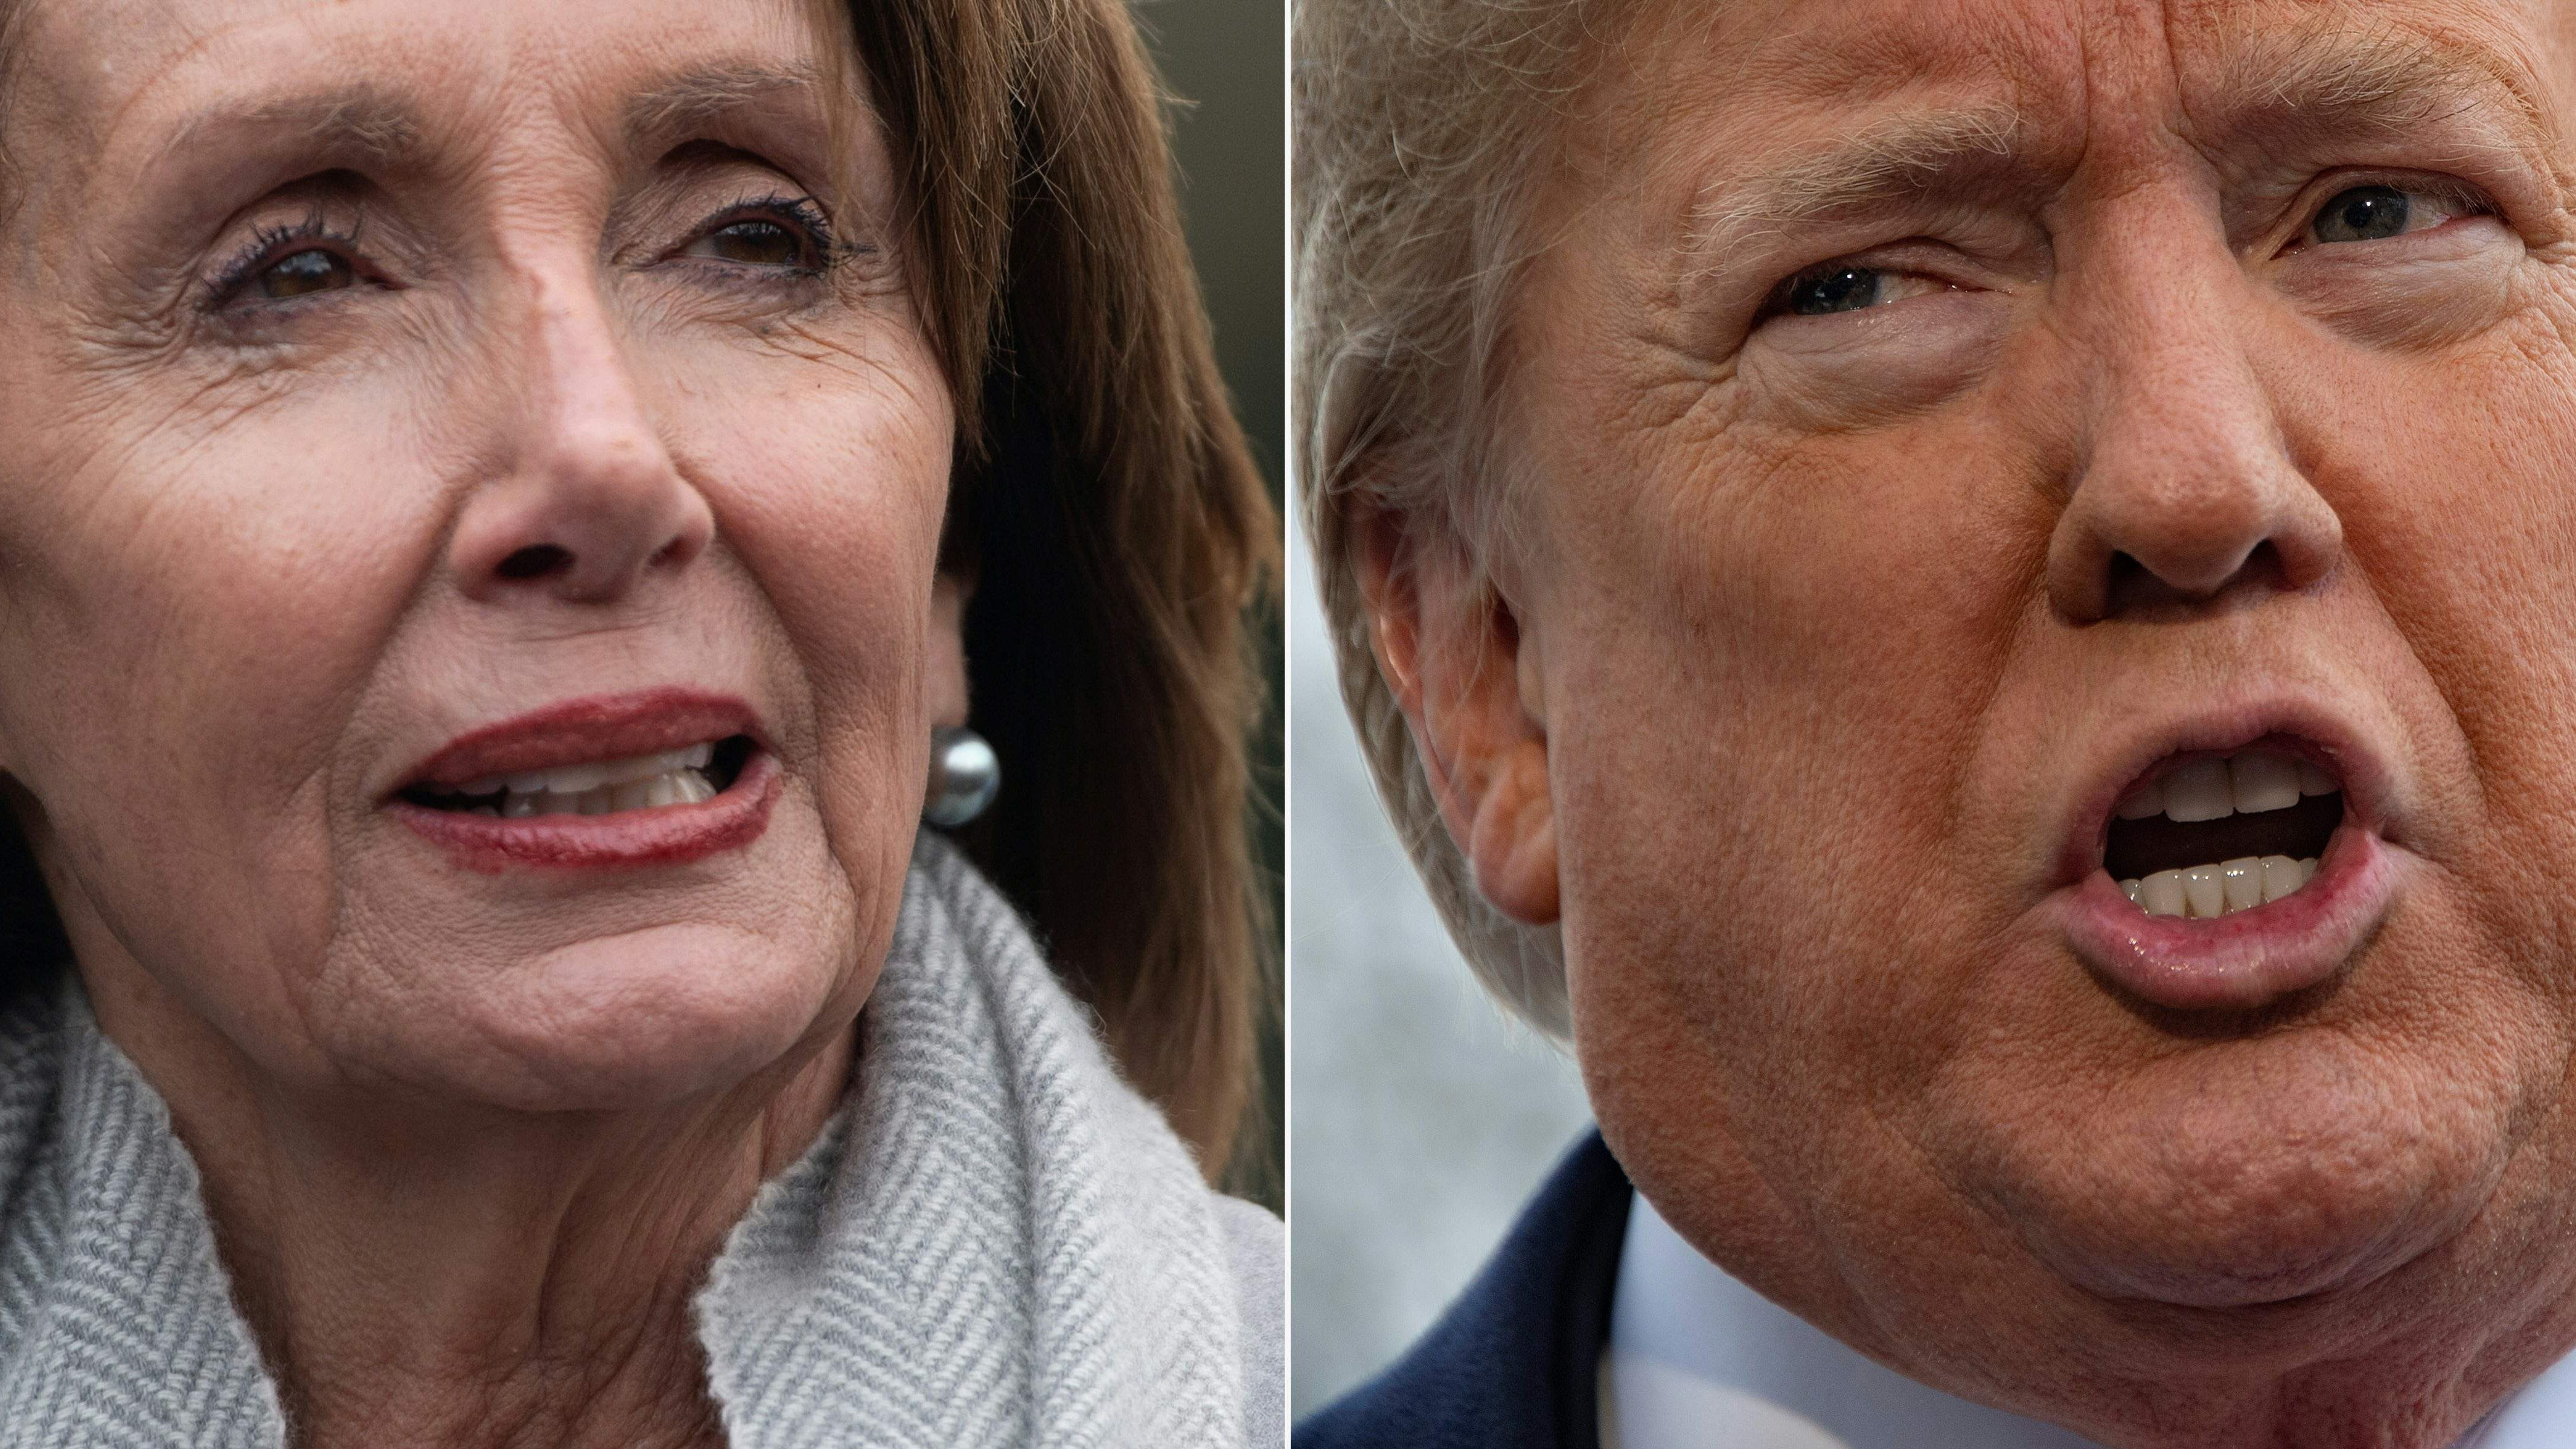 "(COMBO) This combination of pictures created on January 17, 2019 shows a file photo taken on January 9, 2019 of US Speaker of the House Nancy Pelosi following a meeting with US President Donald Trump about the partial government shutdown at the White House in Washington, DC, and US President Donald Trump speaking to the media as he departs the White House in Washington, DC, on January 14, 2019. - President Donald Trump clipped the wings of Democratic party leader Nancy Pelosi on January 17, 2019, scrapping her foreign travel plans in a new twist to the government shutdown feud. Pelosi had suggested postponing Trump's January 29 State of the Union address to Congress. Although she cited the shutdown's effect on security, she appeared to want to deny the president one of his chief annual moments in the limelight.In a letter laced with sarcasm and accompanied by his dramatic signature, Trump responded in kind. ""I am sorry to inform you that your trip to Brussels, Egypt, and Afghanistan has been postponed. We will reschedule this seven-day excursion when the Shutdown is over,"" he wrote. ""I am sure you would agree that postponing this public relations event is appropriate."" (Photos by SAUL LOEB and Jim WATSON / AFP)SAUL LOEB,JIM WATSON/AFP/Getty Images ORIG FILE ID: AFP_1CC4QV"